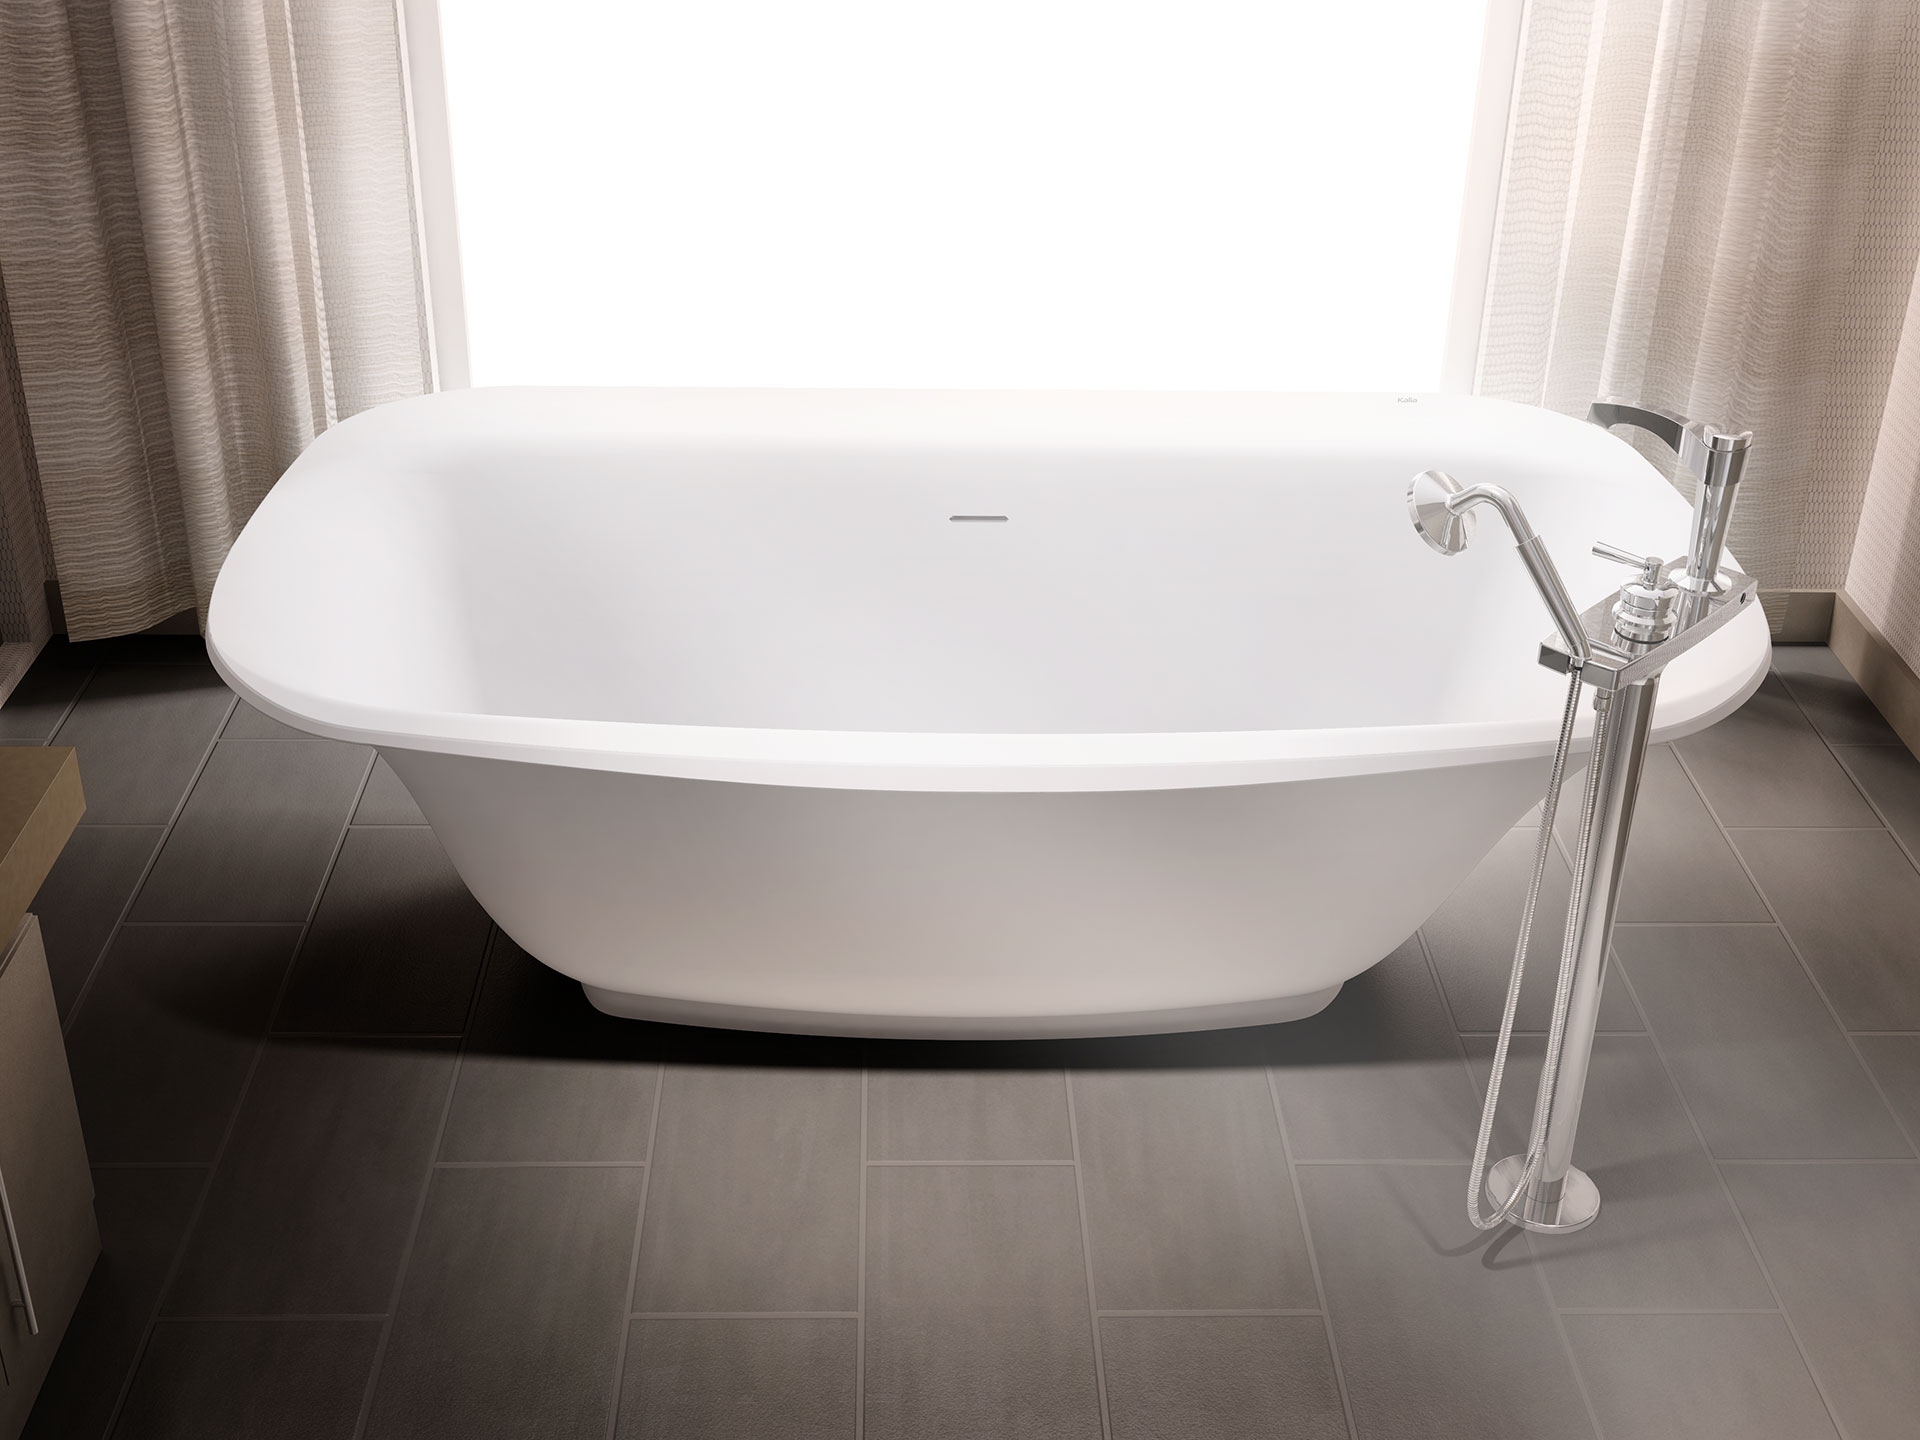 Unusual Professional Tub Refinishing Big Bath Reglazing Flat Glazing Tubs Cost Of Reglazing Tub Young Shower Refinishing Cost OrangePorcelain Paint For Bathtubs Kalia Inc